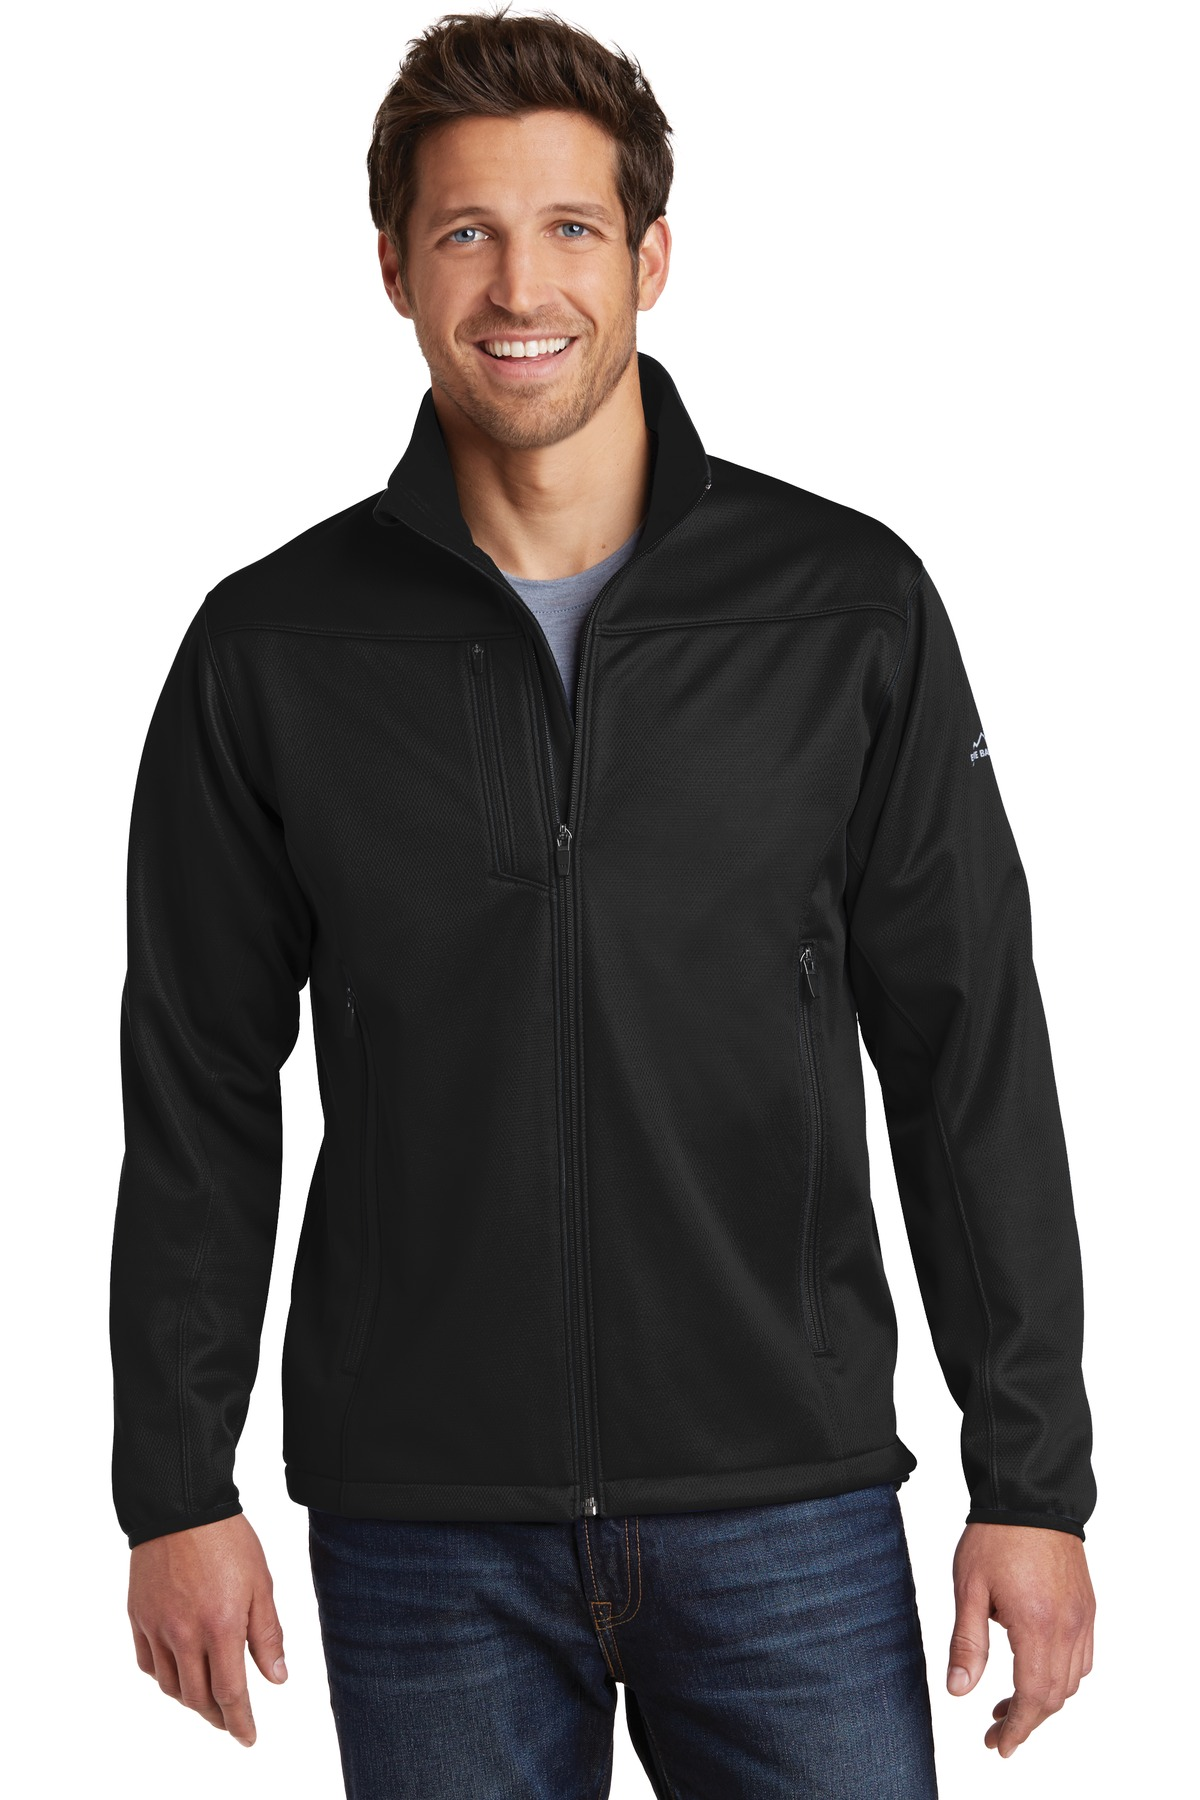 Eddie Bauer  EB538 - Weather-Resist Soft Shell Jacket